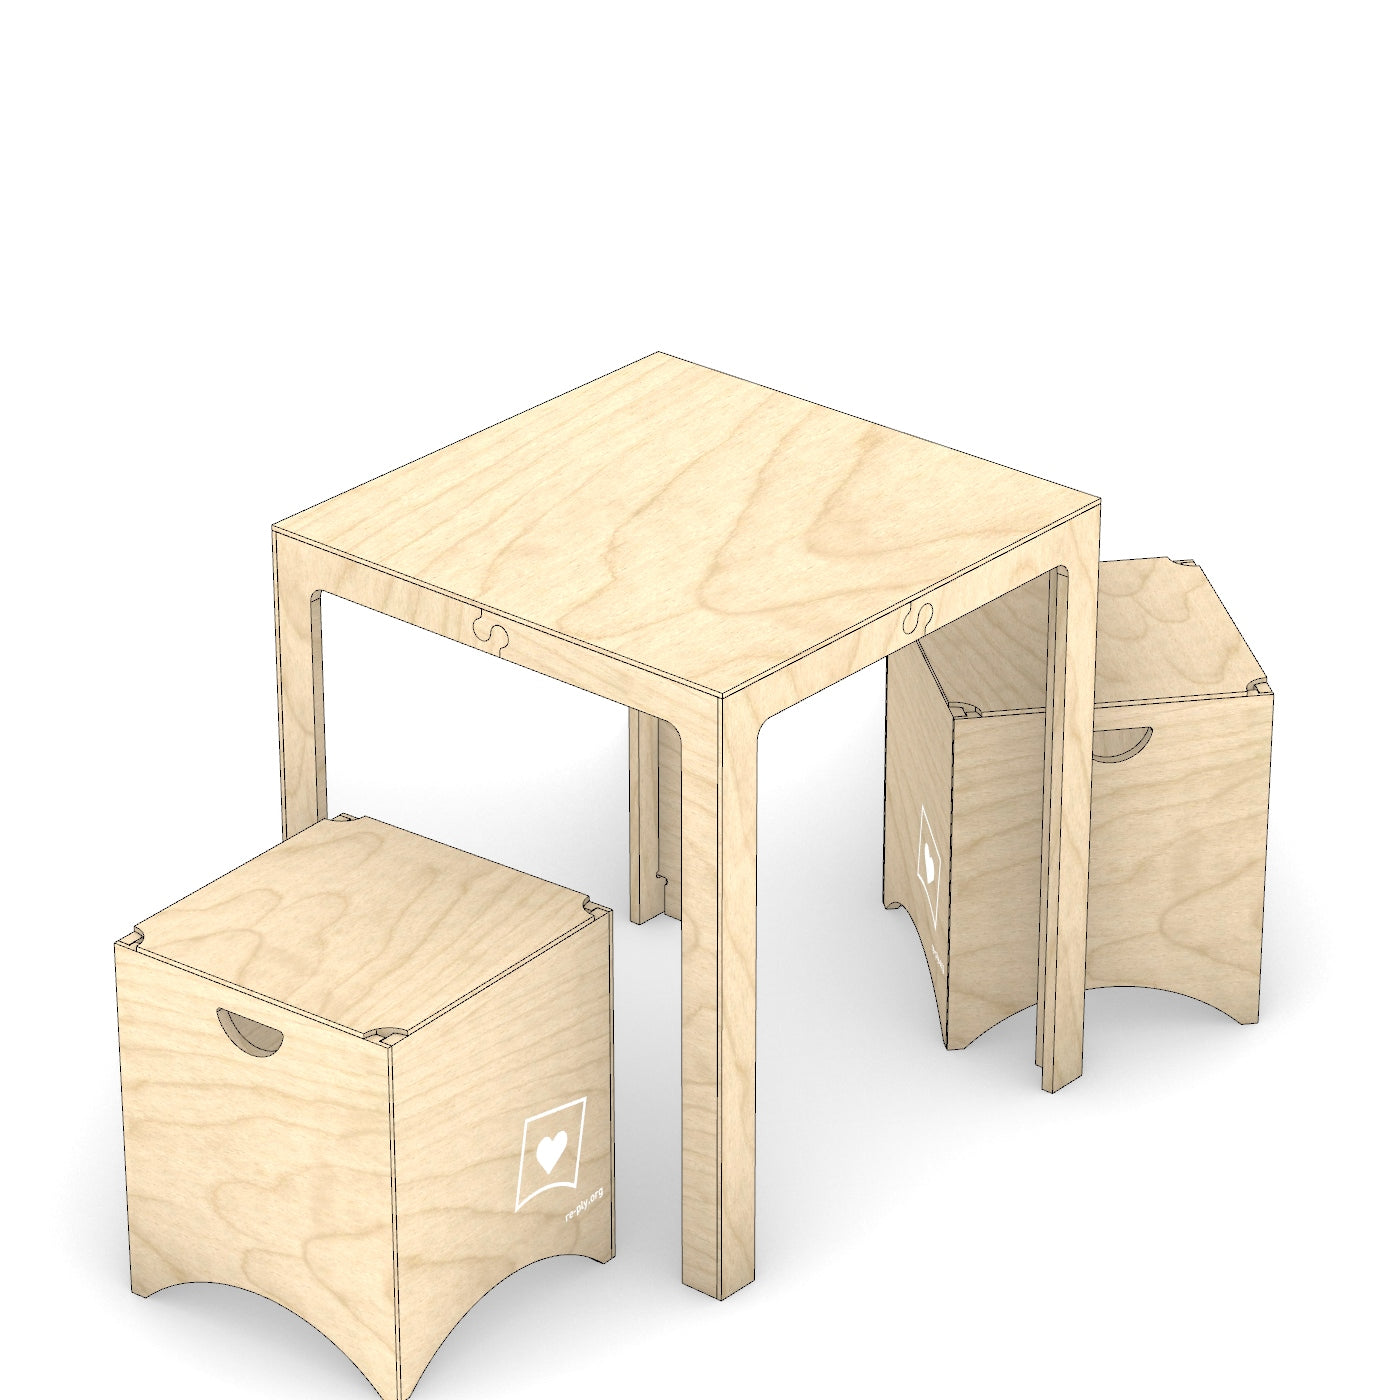 "Table Set (25"" Square + 2 Stools) - from $231"